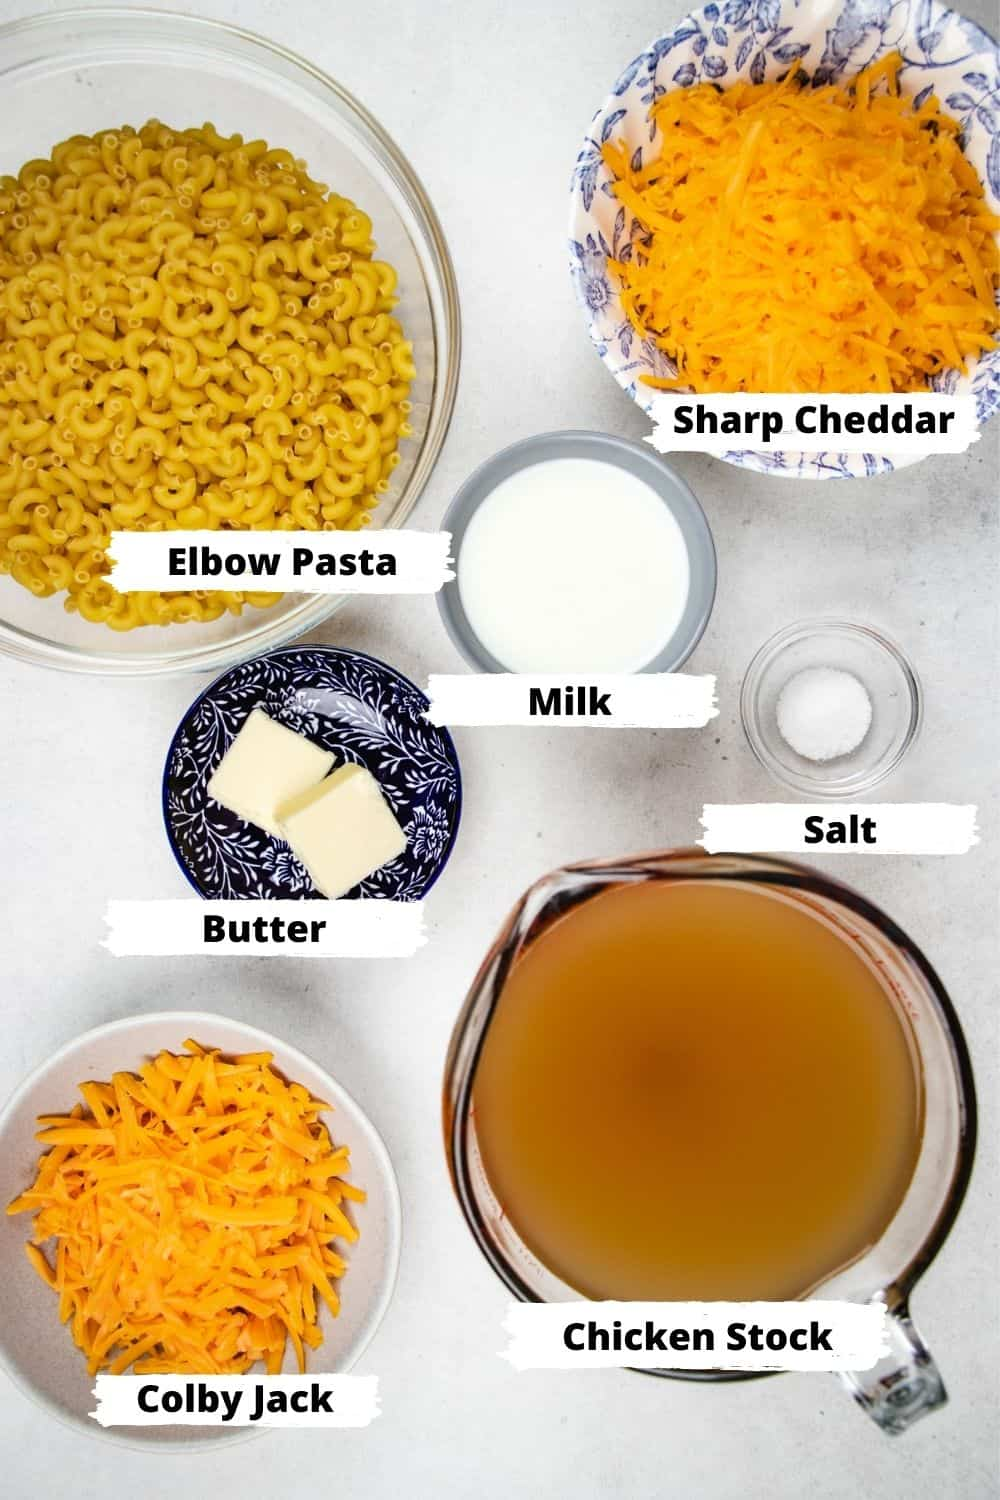 Ingredients for Mac and Cheese.